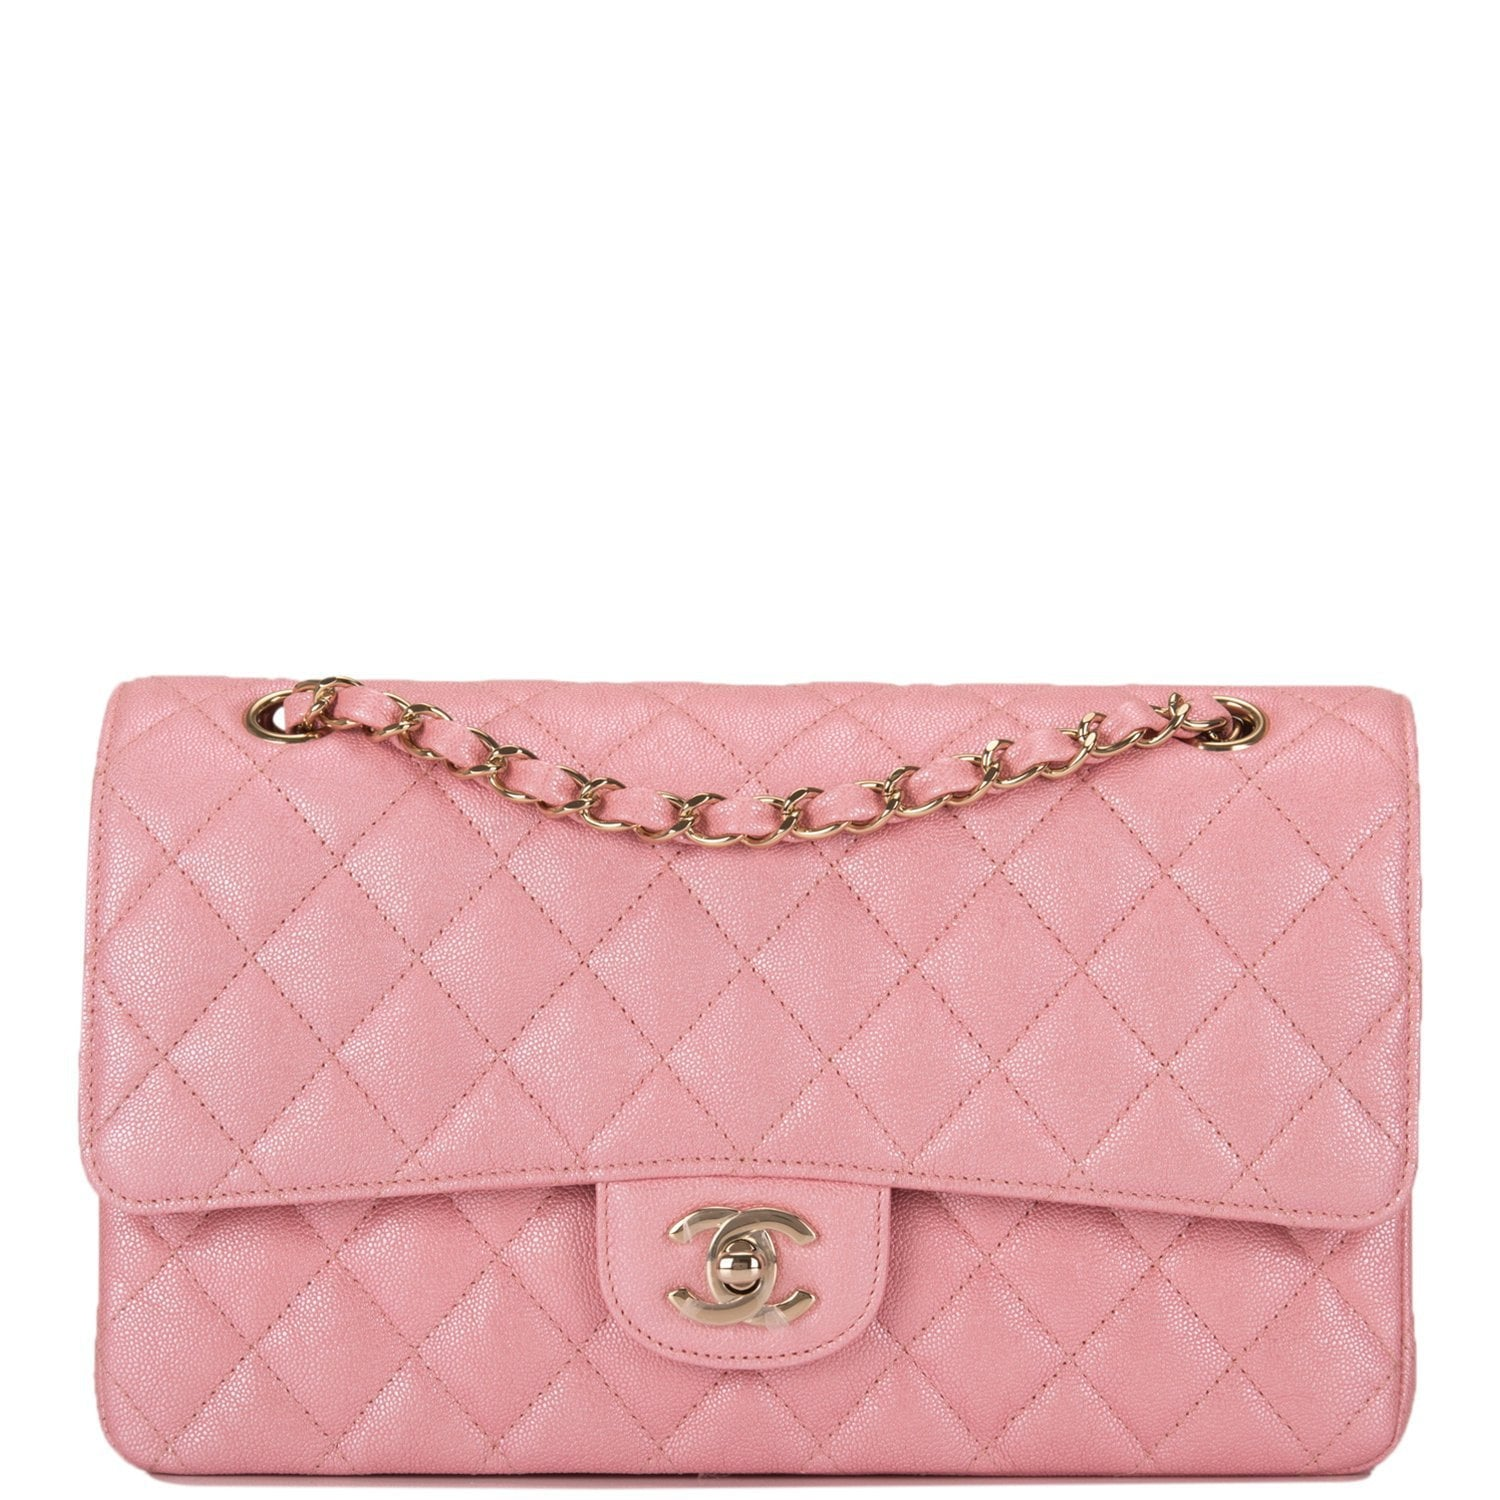 b5e46924 Chanel Iridescent Pink Quilted Caviar Medium Classic Double Flap Bag